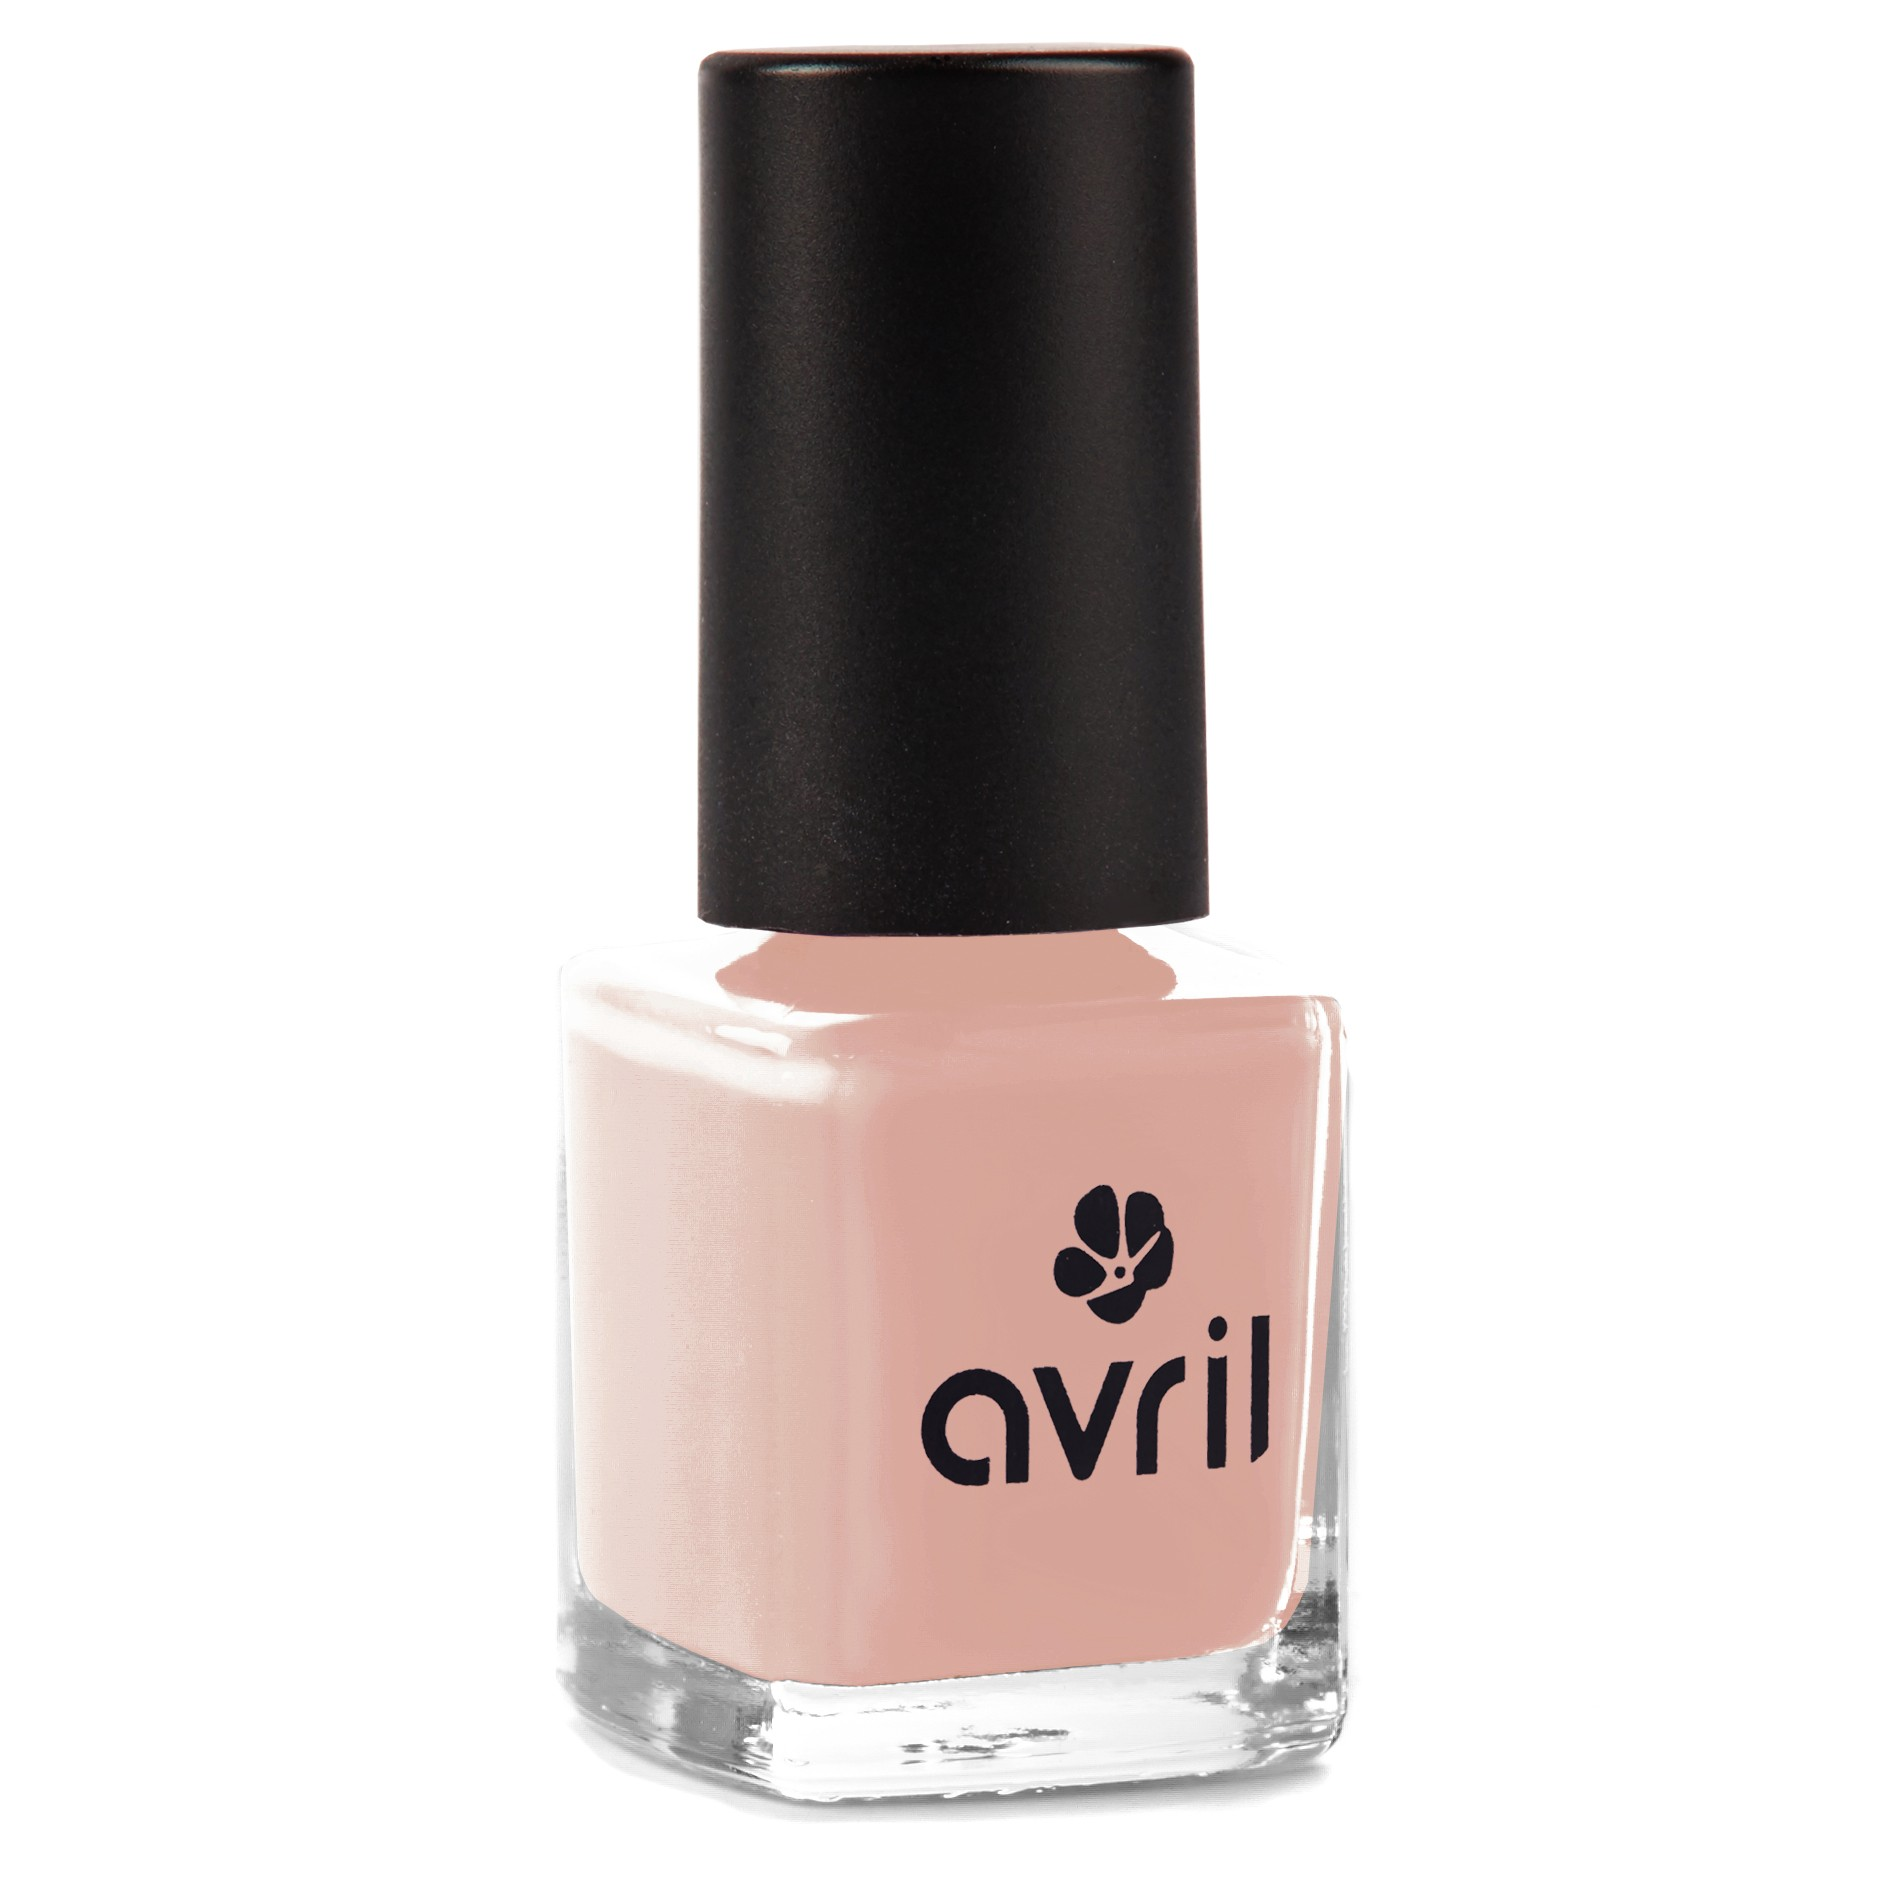 polish light last new color beautyjudy pink lingerie nyc nail expert york lingering